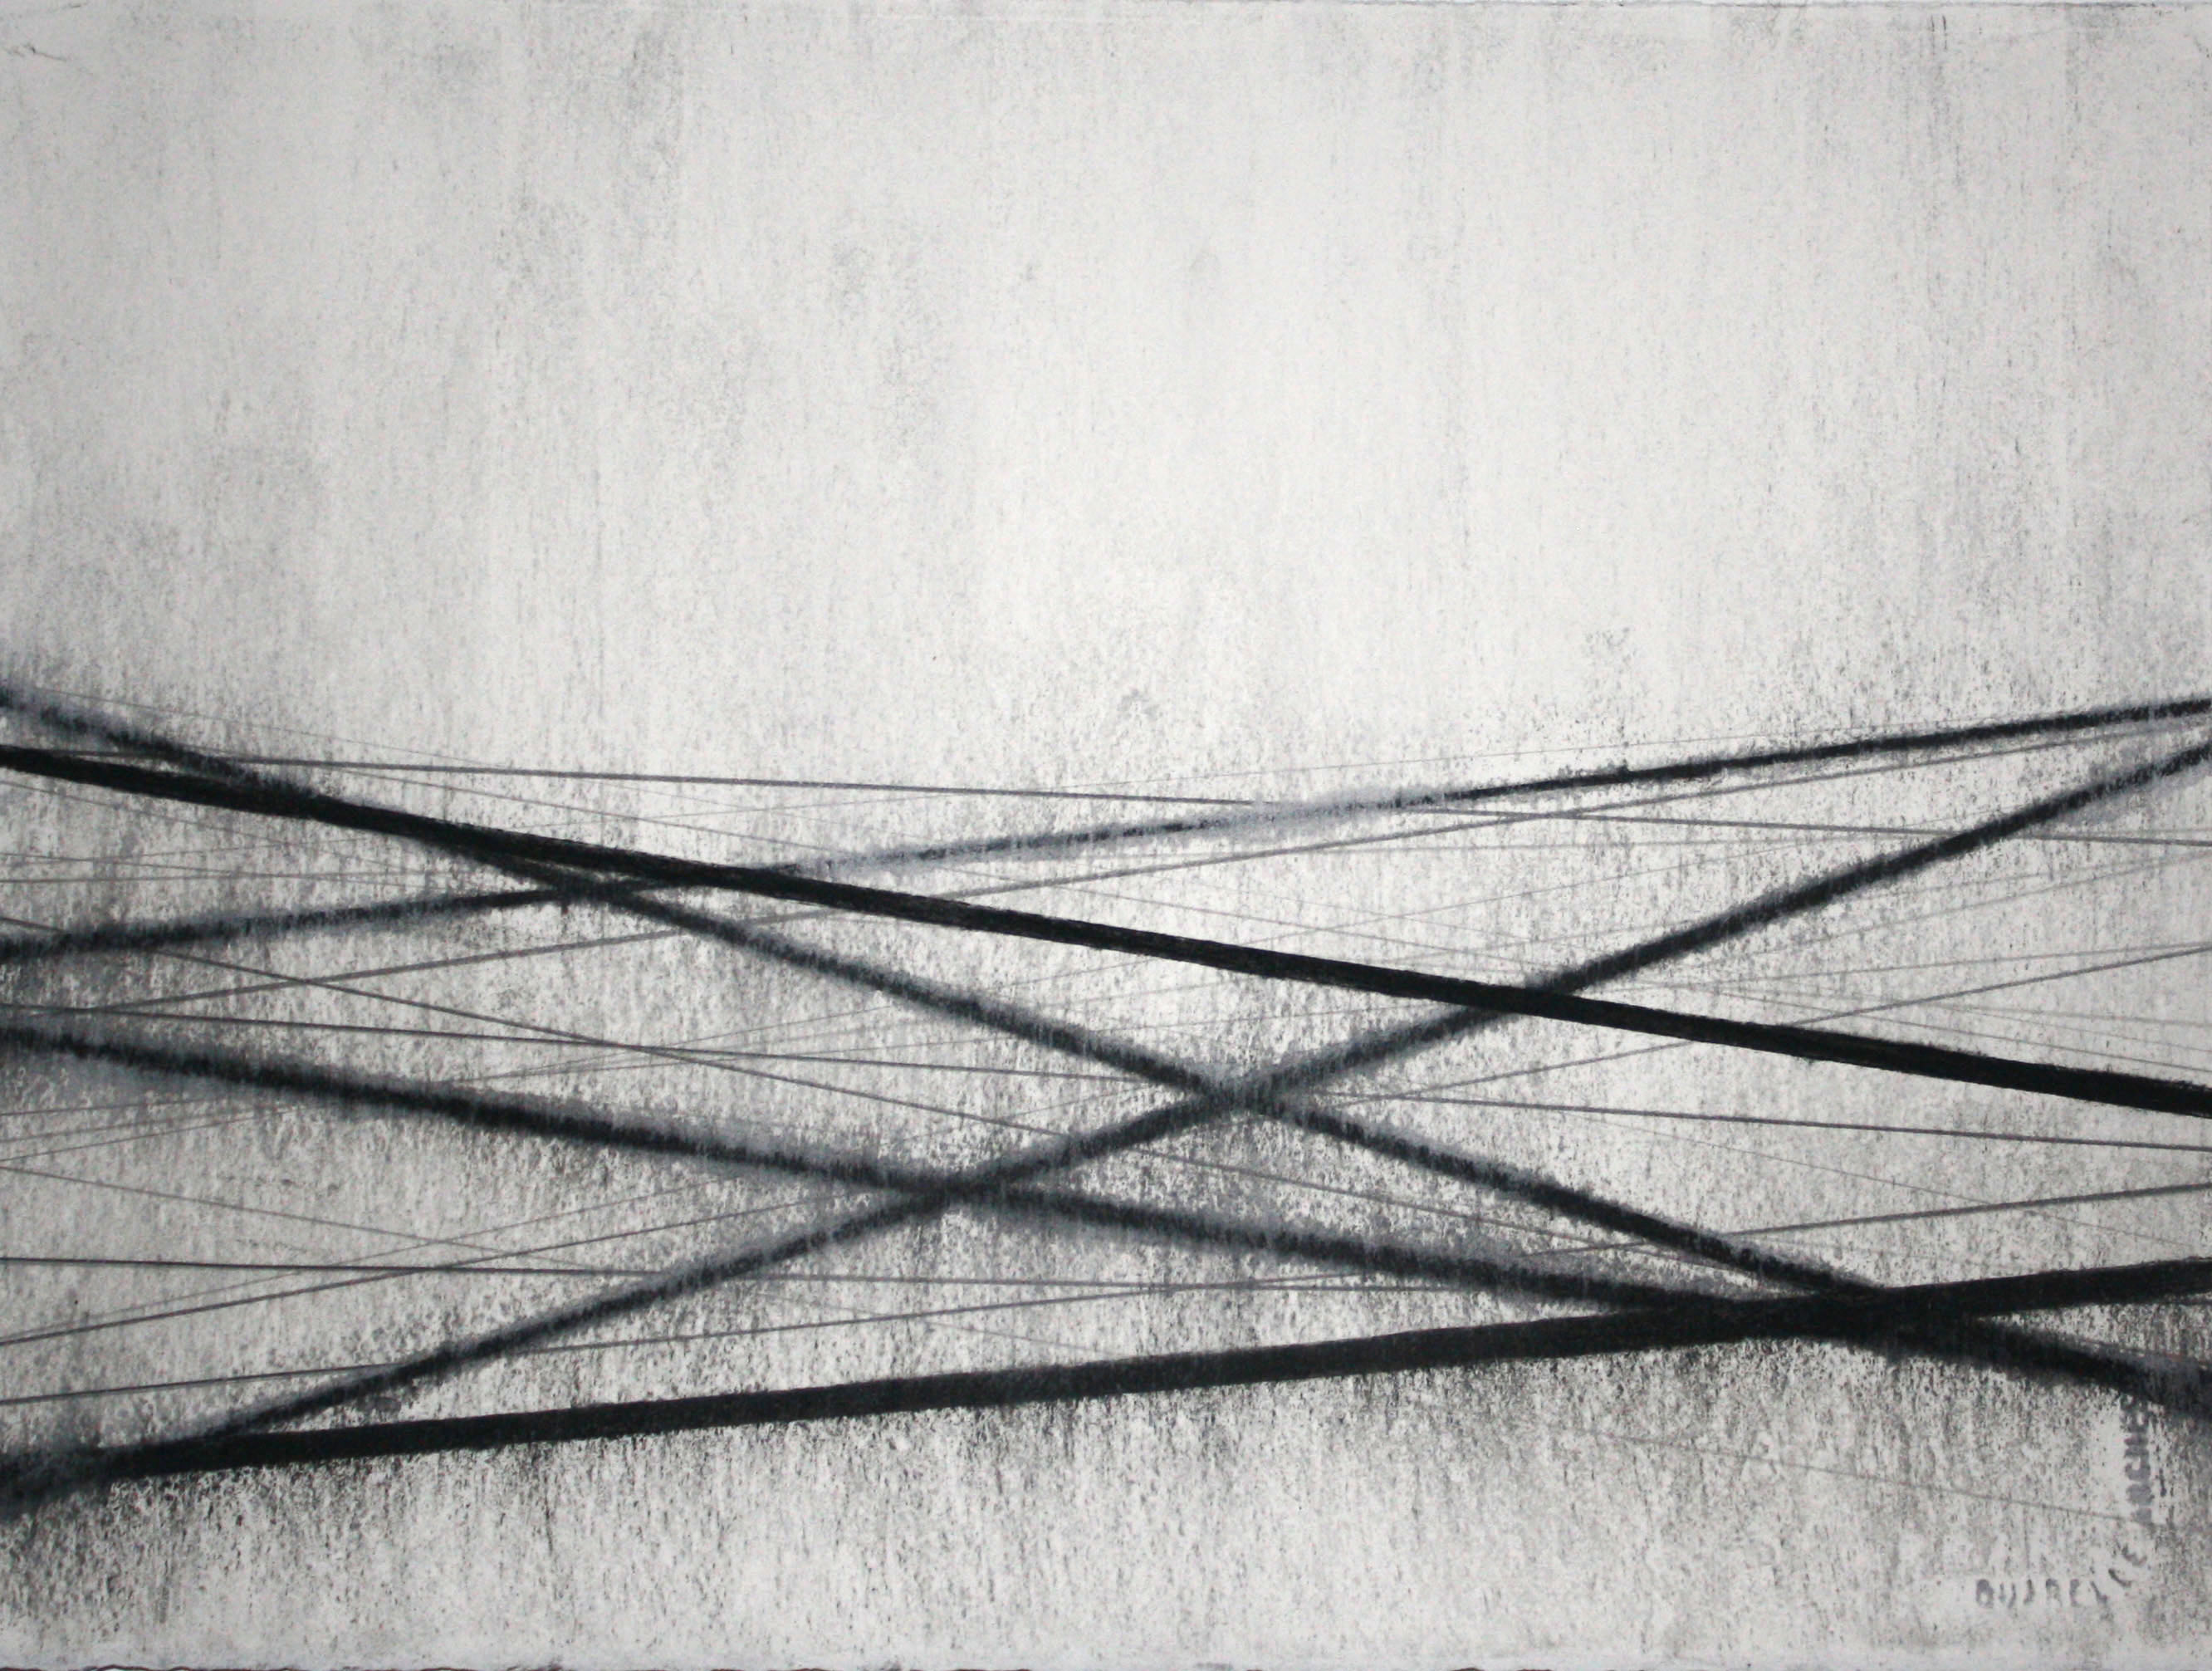 Drawing by Fiona Robinson, charcoal and graphite on paper